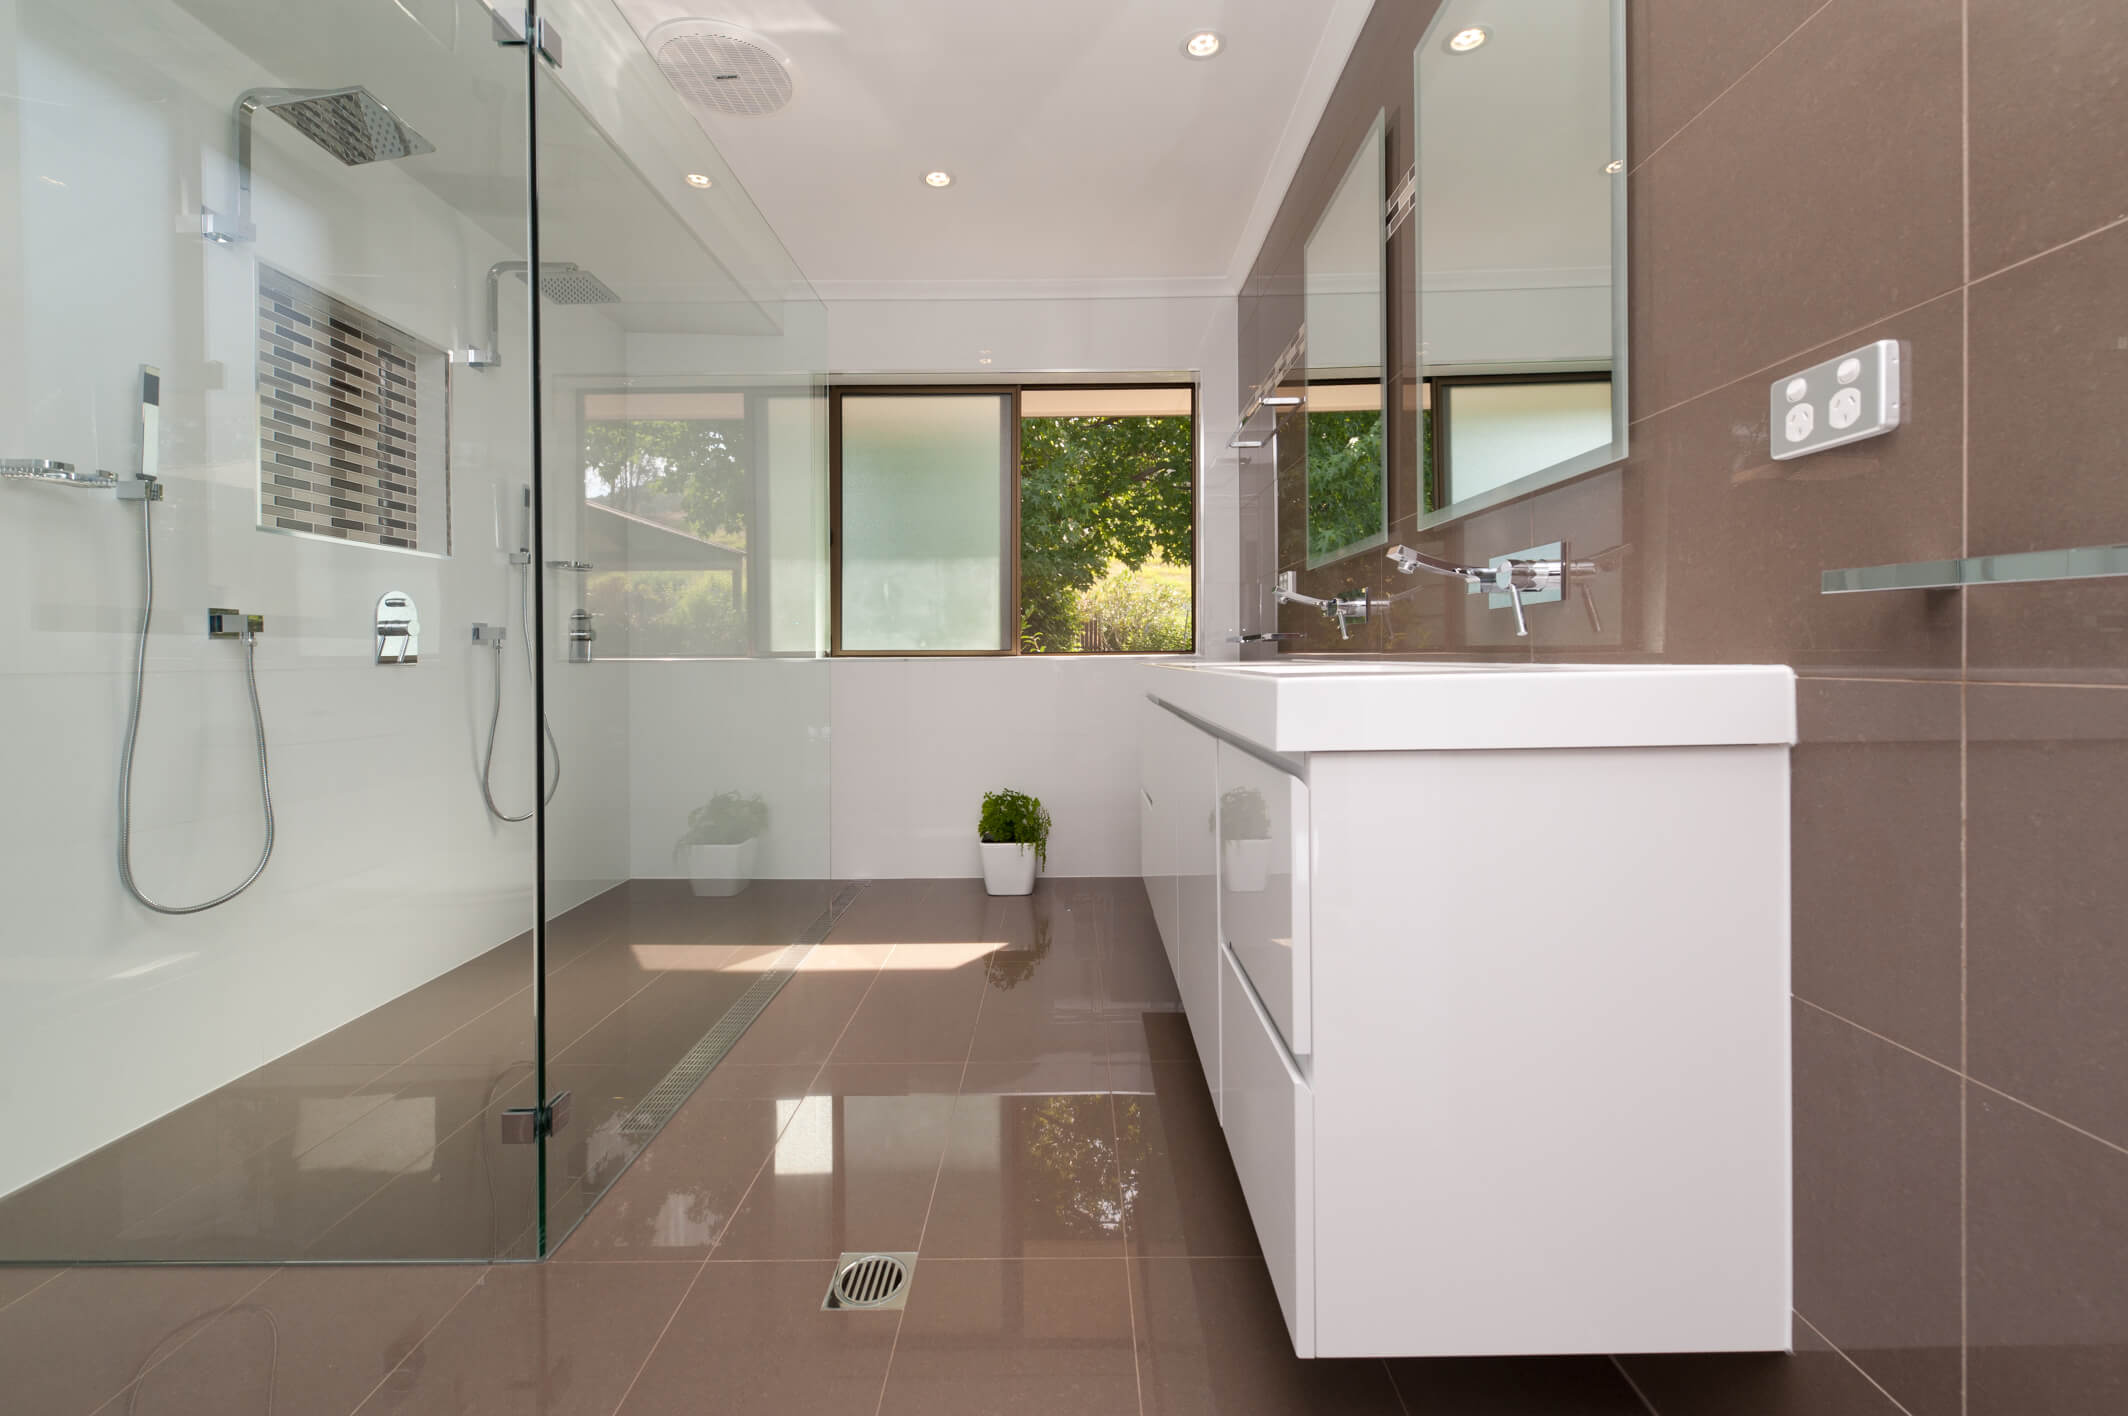 expert bathroom renovations canberra small to large bathroom remodeling ideas bathroom remodeling ideas4